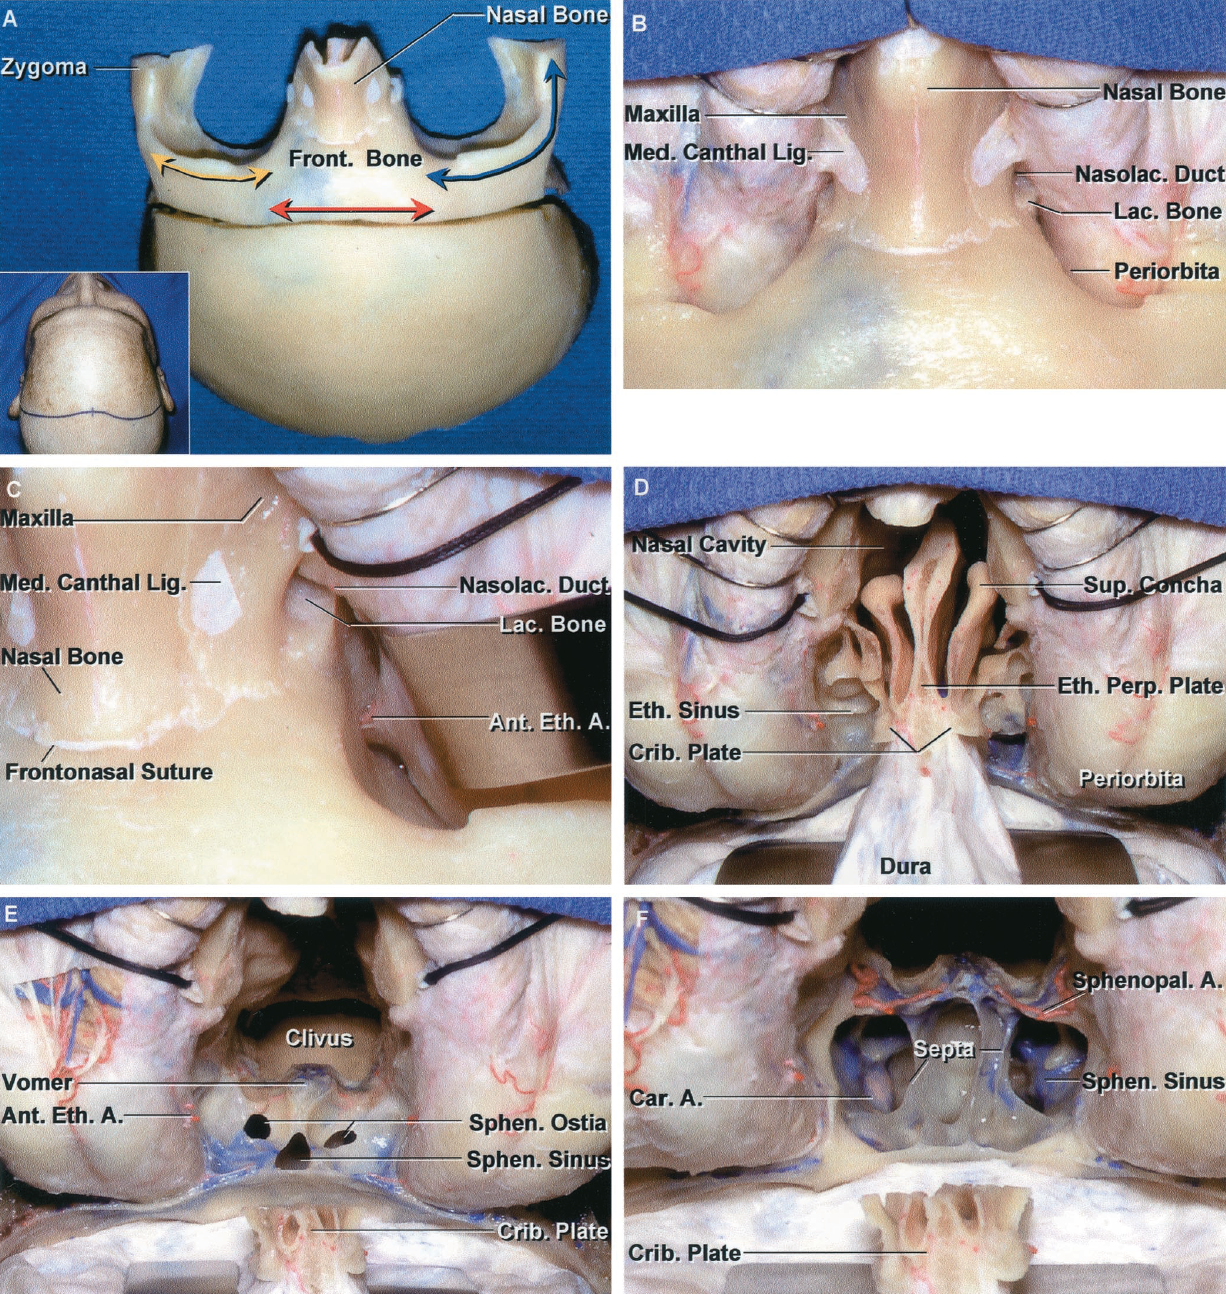 FIGURE 6.12. A–F, relationships in the transbasal and extended frontal approaches. A, the inset shows the bicoronal scalp incision. A large bifrontal craniotomy and a fronto-orbitozygomatic osteotomy have been completed. The osteotomized segment may extend through the nasal bone and from one to the other lateral orbital rims, as shown. However, for most lesions, a more limited bone flap and osteotomy will suffice and can be tailored as needed to deal with the involvement of the cranial base, nasal cavity, paranasal sinuses, or orbit. For an orbital lesion, an orbitofrontal craniotomy, elevating only the superior orbital rim (yellow arrows) and orbital roof, is all that is needed. For a cavernous sinus or unilateral lesions of the anterior or middle fossa, an orbitozygomatic osteotomy will usually suffice (blue arrow). For a clival lesion, a more limited bifrontal approach (red arrow) will suffice. B, the periorbita has been separated from the walls of the orbit in preparation for the osteotomies. Division of the medial canthal ligament is not necessary for most lesions, but may be required for lesions extending into the lower nasal cavity or orbit. The ligaments should be re-approximated at the end of the operation. C, the right medial canthal ligament has been divided and the orbital contents retracted laterally to expose the nasolacrimal duct and the anterior ethmoidal branch of the ophthalmic artery at the anterior ethmoidal foramen. D, the osteotomies have been completed and the frontal dura elevated. The dura remains attached at the cribriform plate. The upper parts of both orbits are exposed. E, an osteotomy around the cribriform plate leaves it attached to the dura and olfactory bulbs, a maneuver that has been attempted to preserve olfaction but has not been commonly successful. The anterior face of the sphenoid sinus and both sphenoid ostia are exposed between the orbits. F, the sphenoid sinus has been opened to expose the septa within the sinus. The sphenopalatine arteries cross the anterior face of the sphenoid.